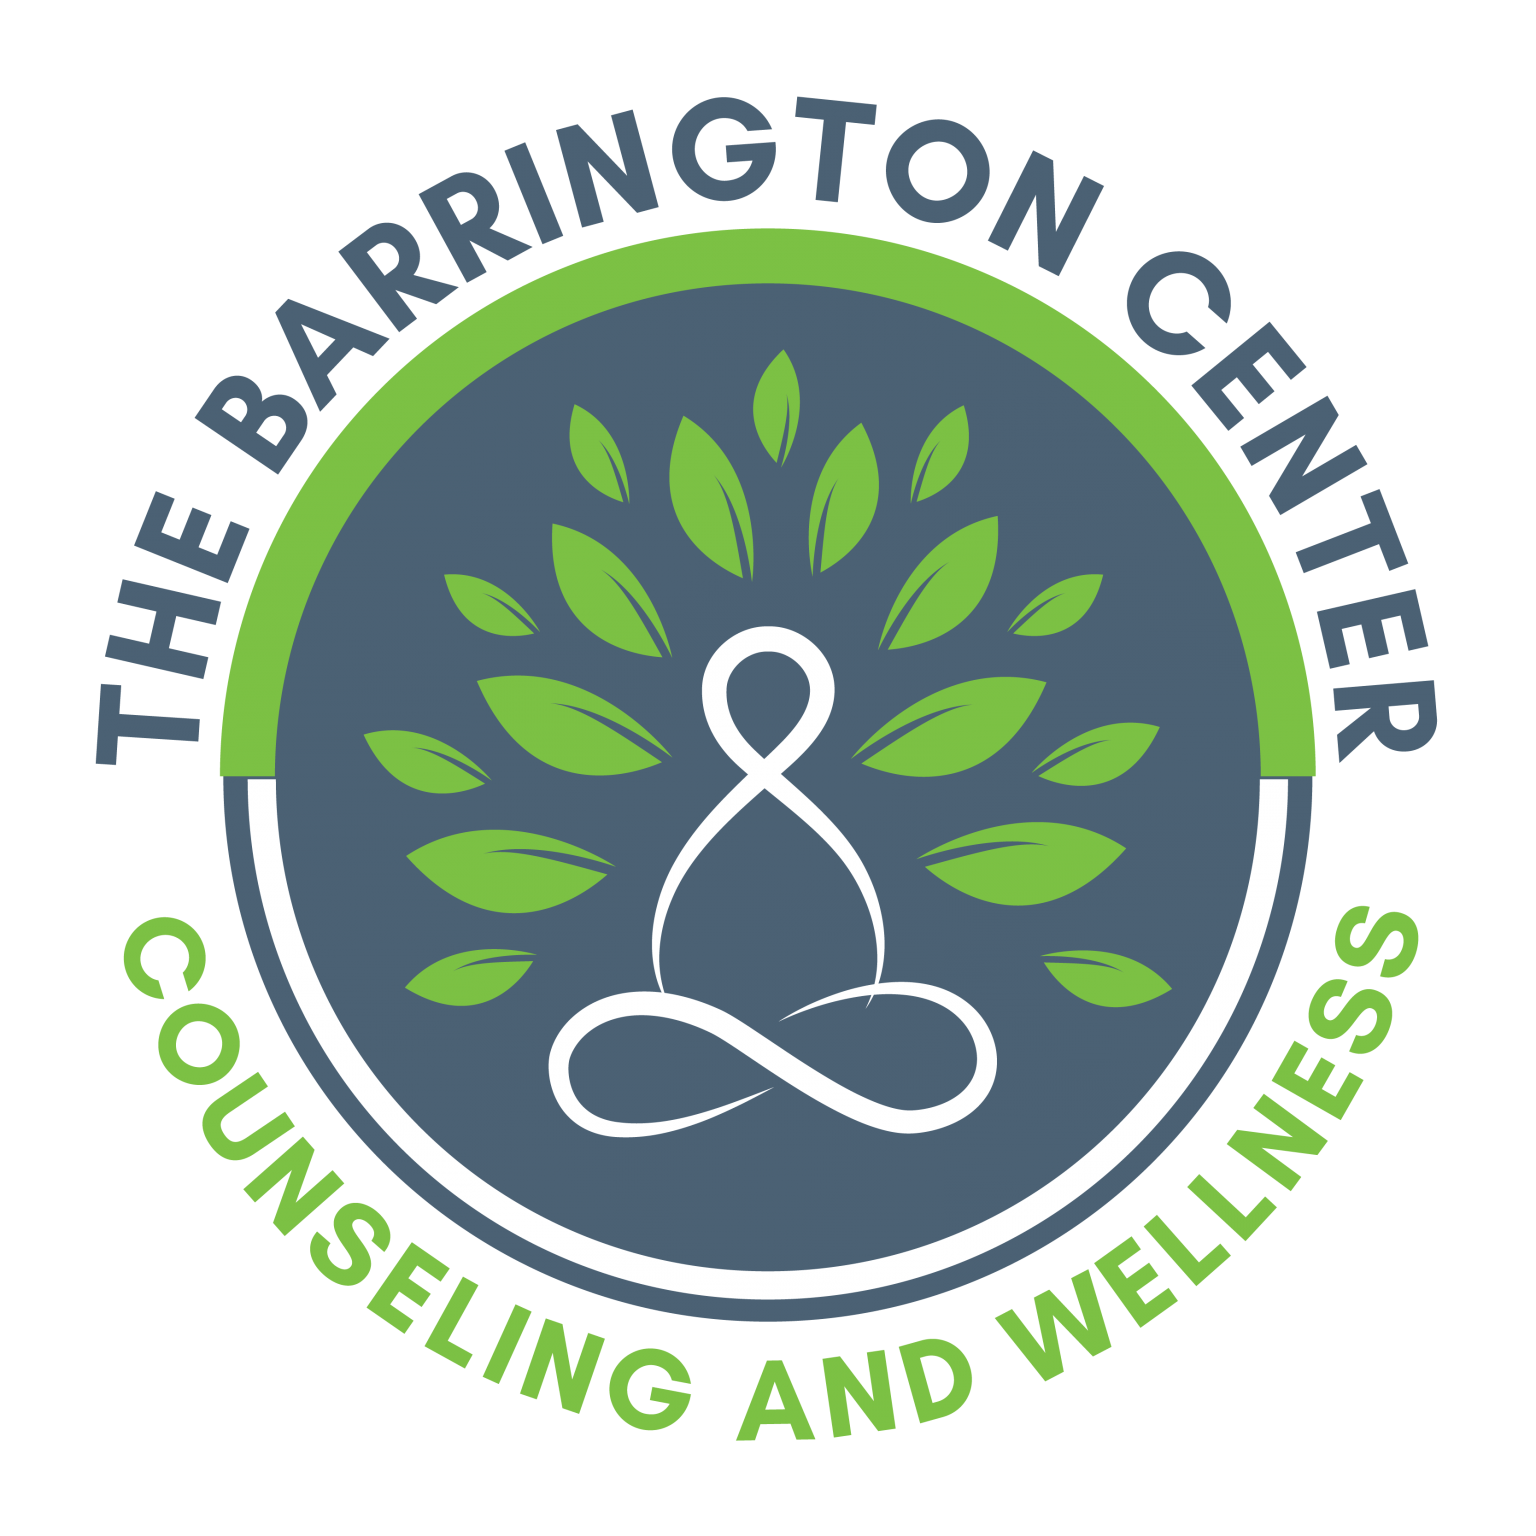 The barrington center logo